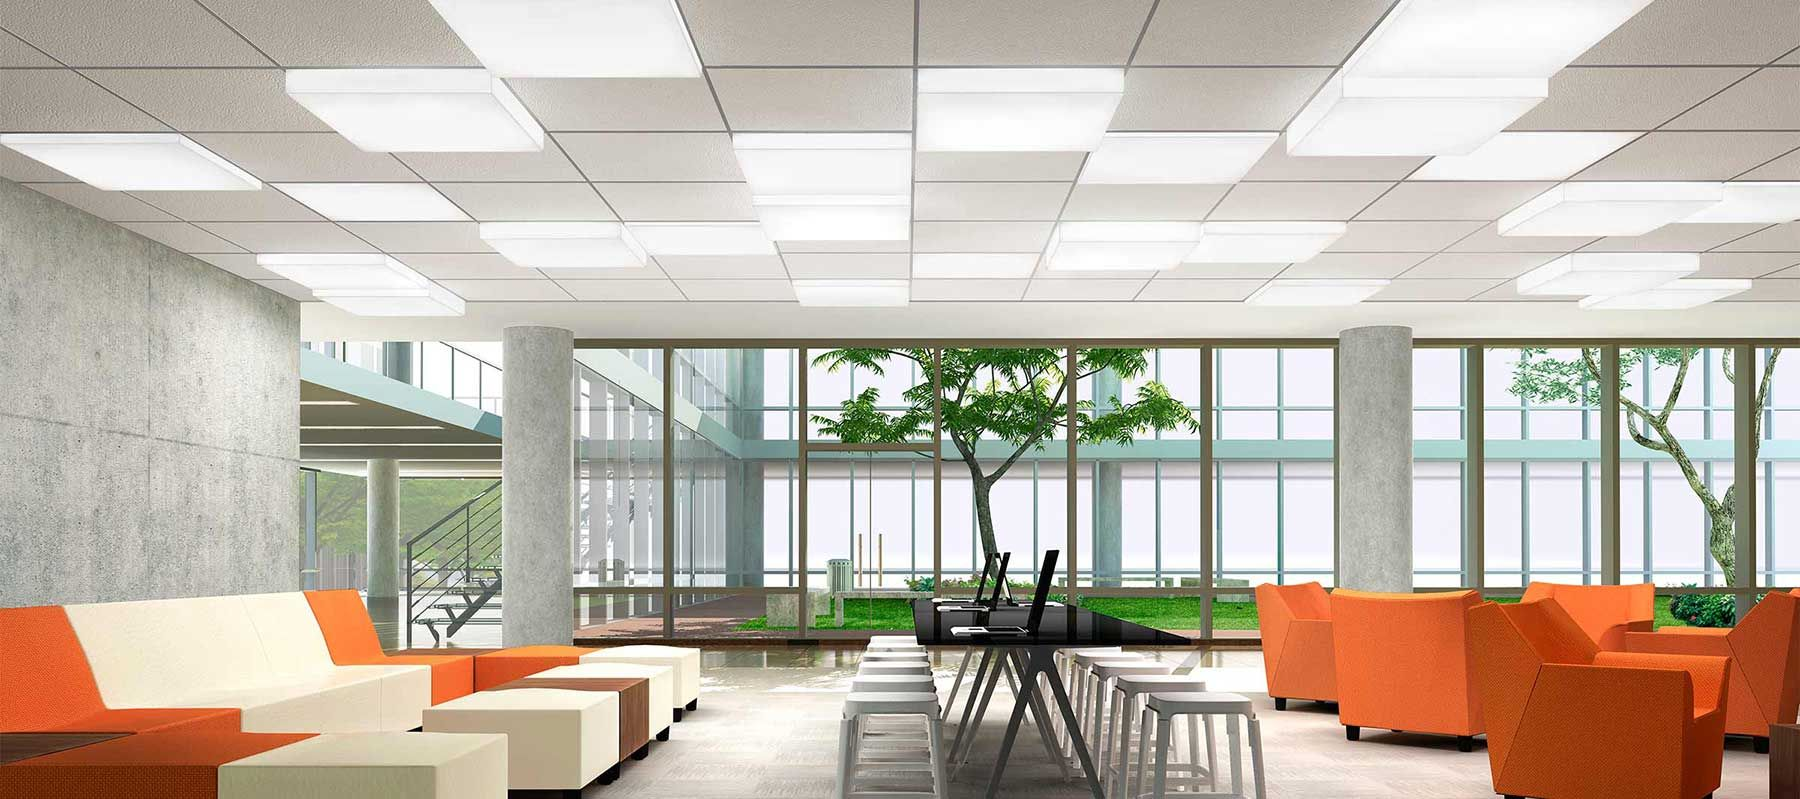 Fnvlhighereducation1g 1800799 pixels bld1421nob pinterest from simple to spectacular we offer slot lighting troffers and more all designed to integrate and align with practically any ceiling arubaitofo Images